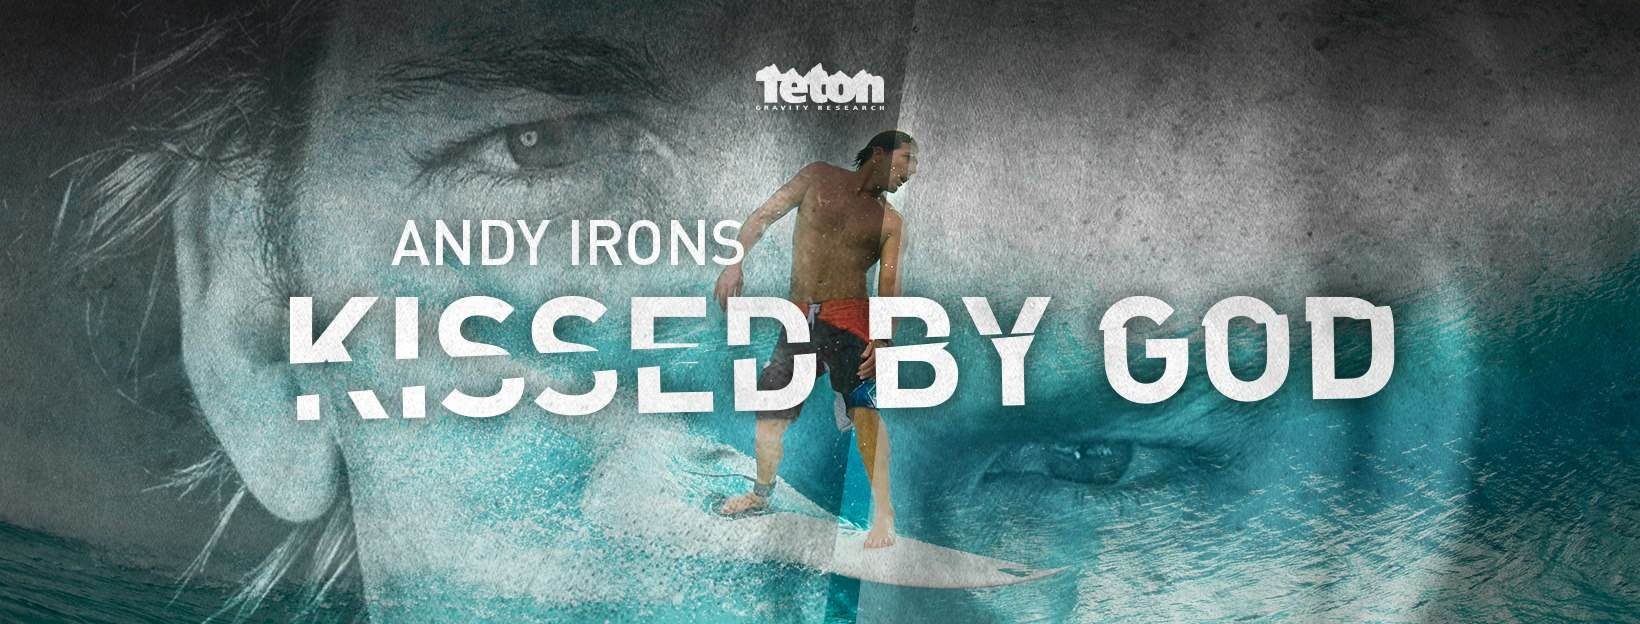 Australian Tour Dates to 'Andy Irons: Kissed By God